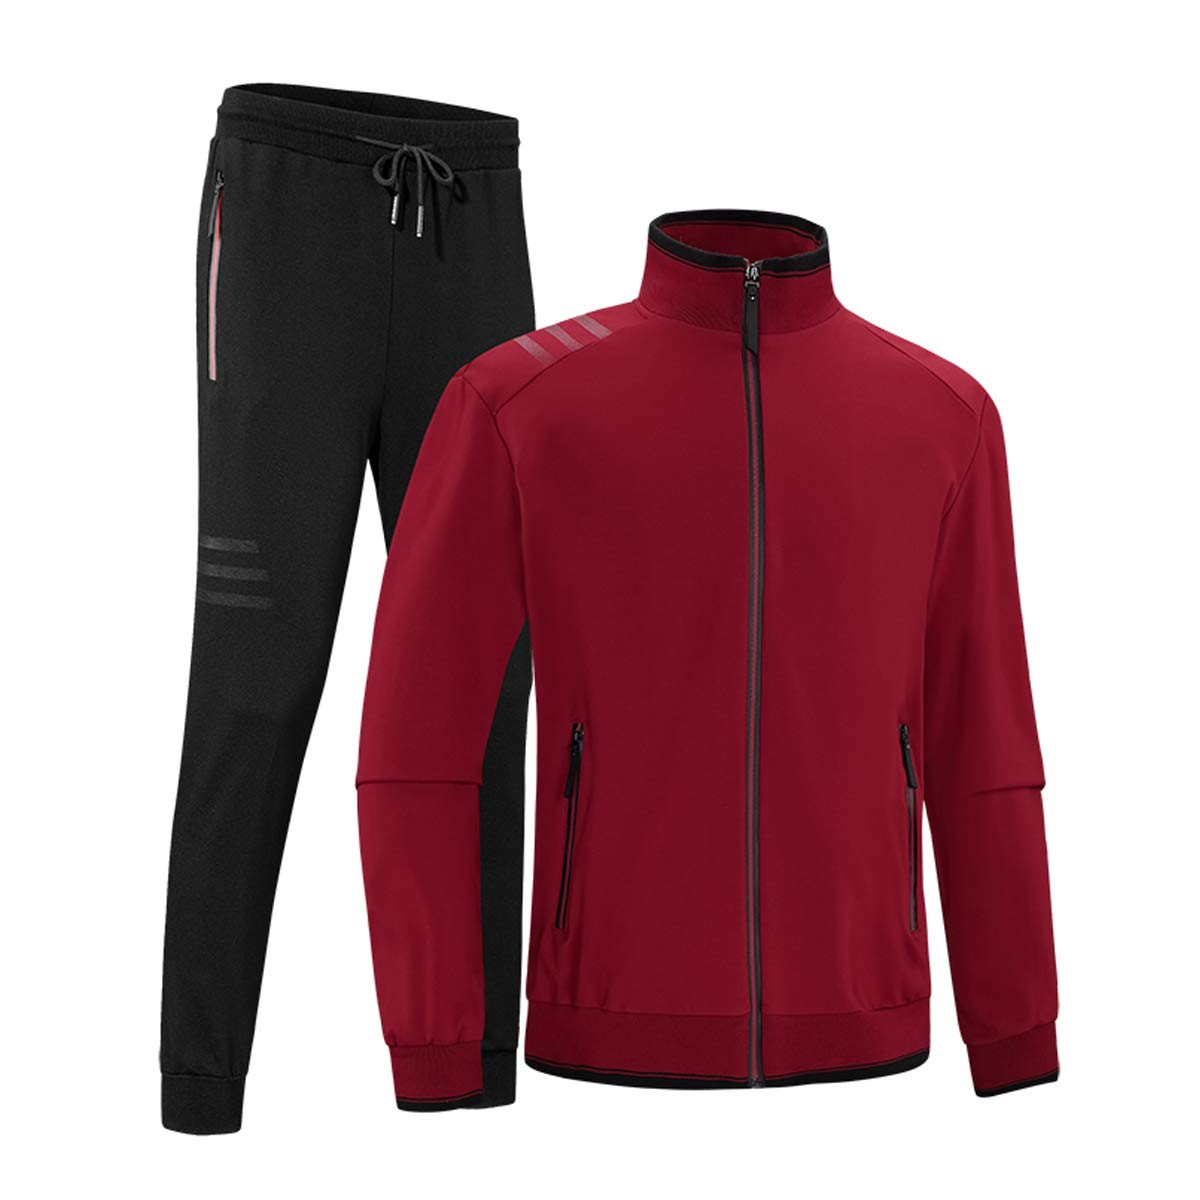 f283df0a4e59 INVACHI Men s Casual 2 Pieces Contrast Cord Full Zip Sports Sets Jacket    Pants Active Fitness